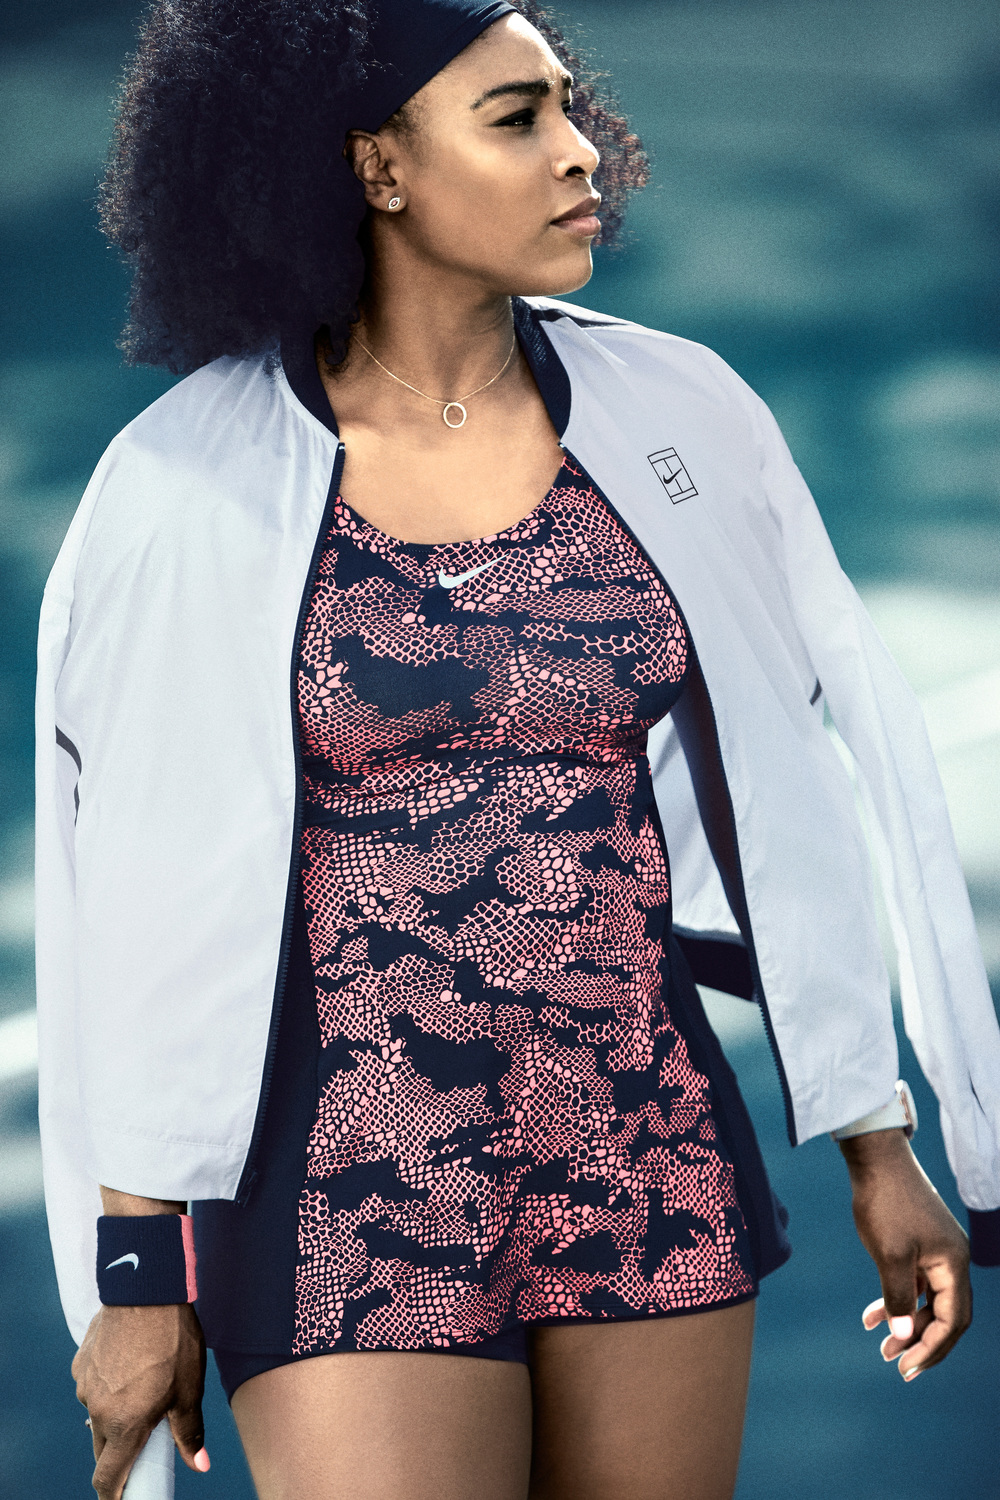 Serena_Williams_NikeCourt_25_original.jpg